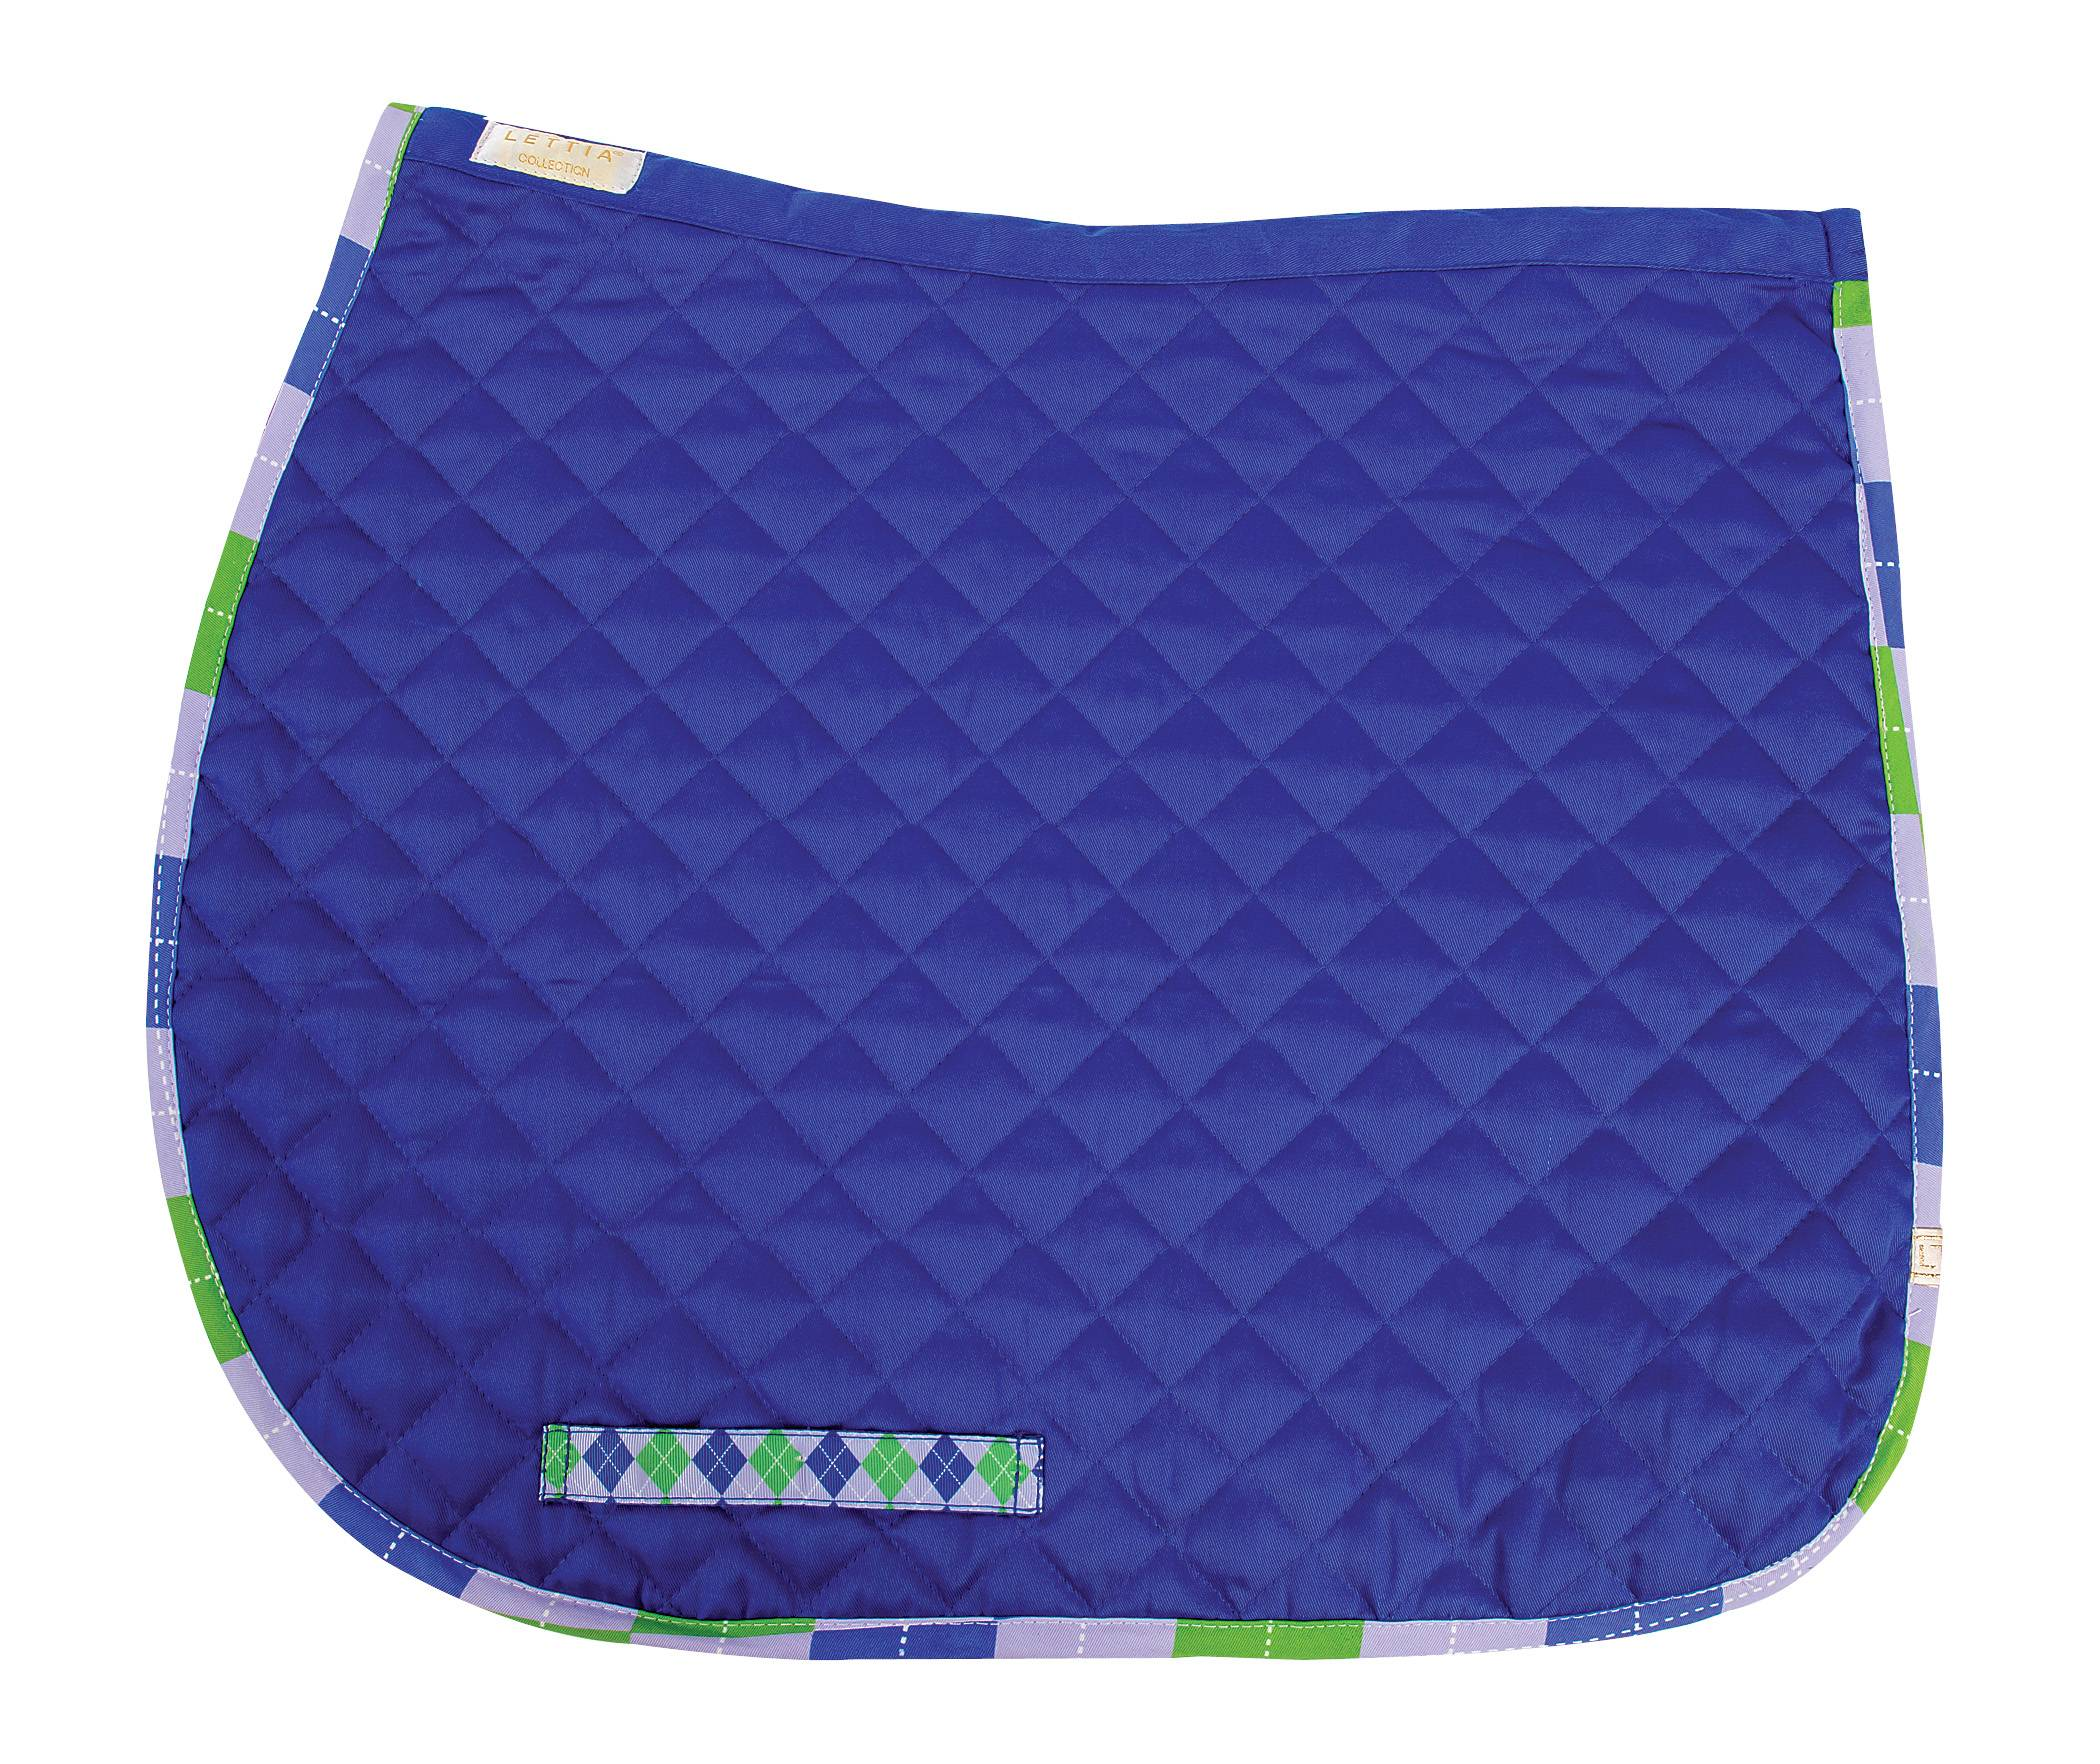 Lettia Argyle Baby Pad - All Purpose